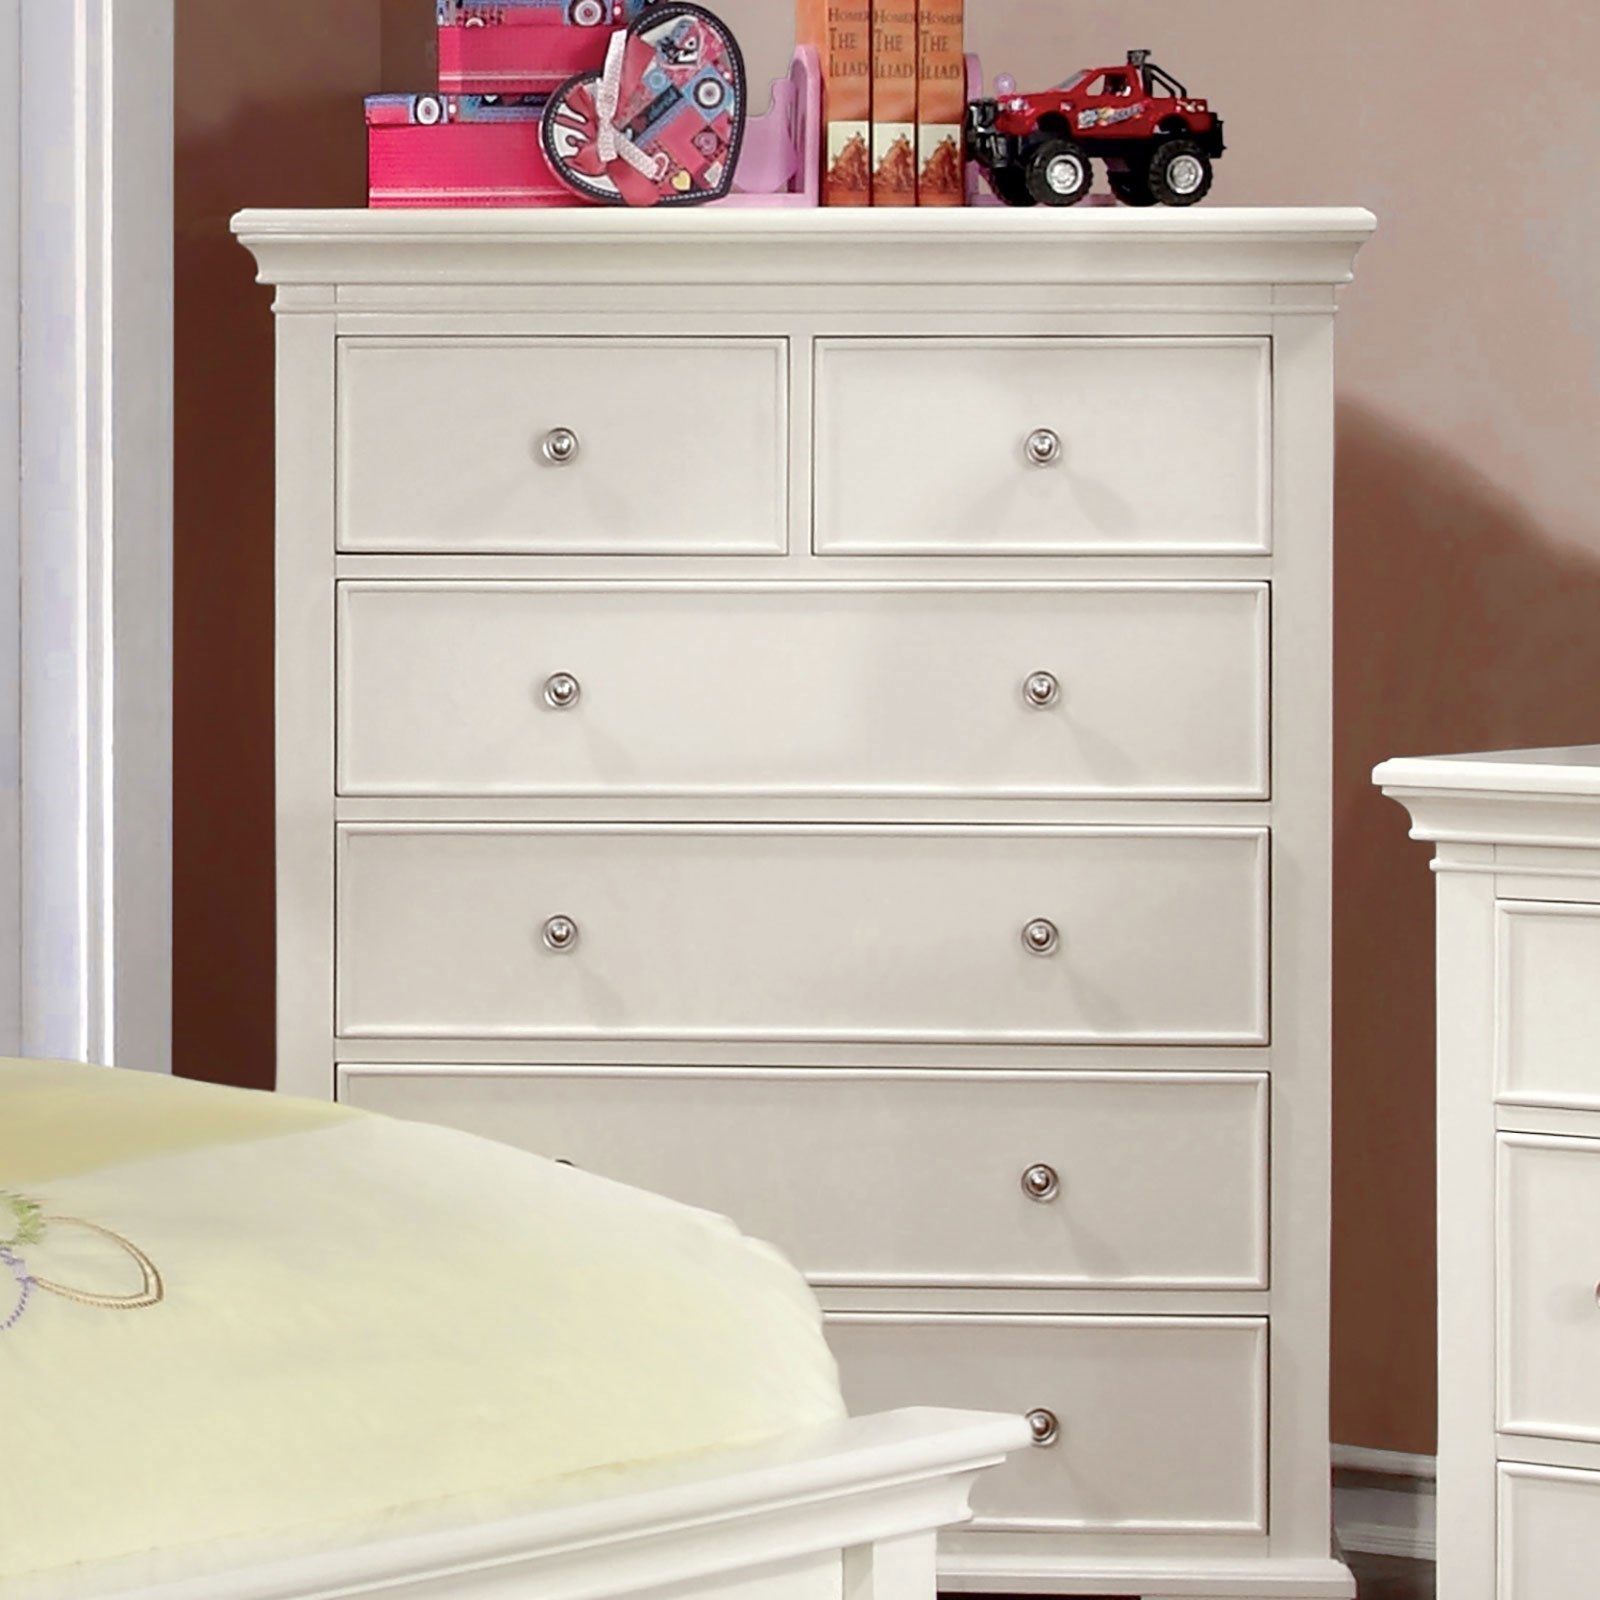 6 Drawer Chest Of Drawers Mullan Transitional 6 Drawer Chest Of Drawers By Furniture Of America At Dream Home Furniture